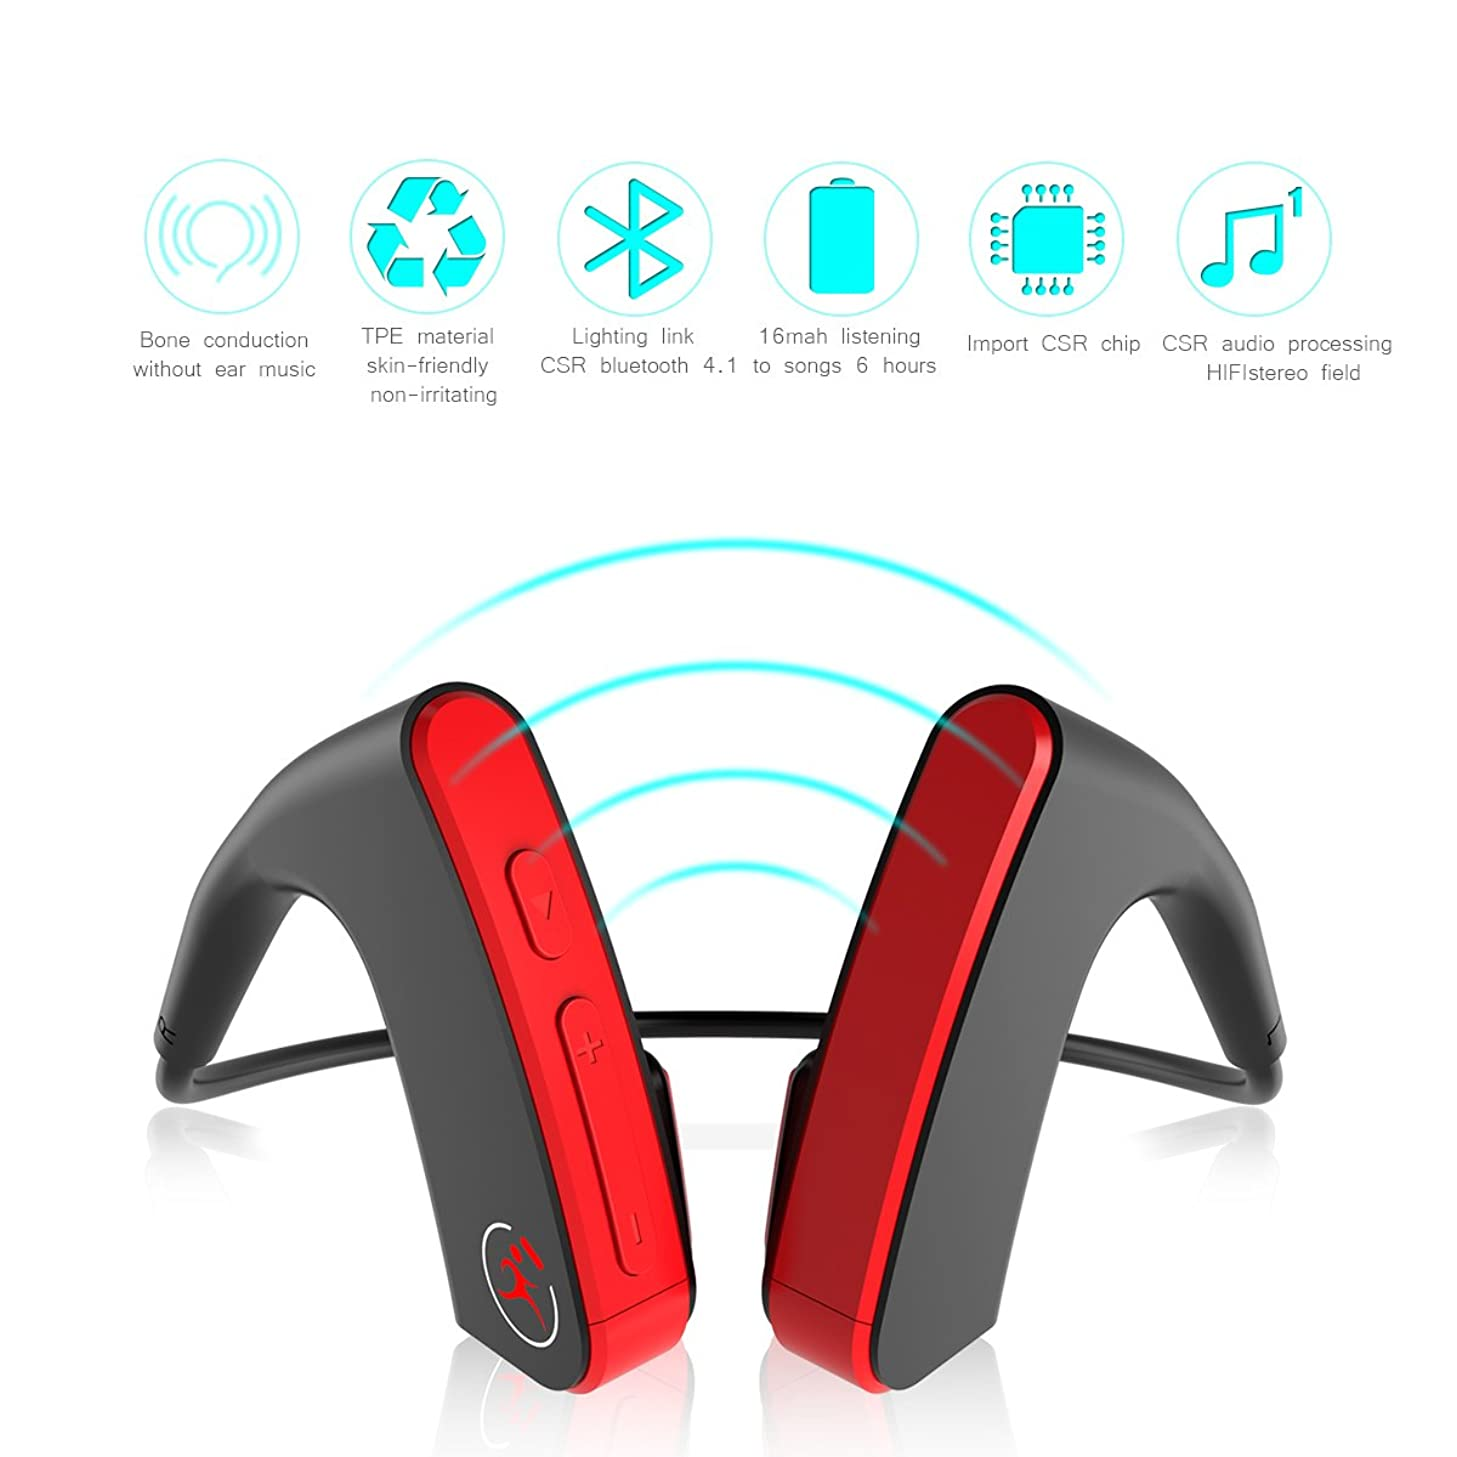 Bone Conduction Bluetooth Headset, Hanging Ear Bilateral Stereo Wireless Sports Outdoor Headset for iPhone Android Other Bluetooth Devices-red